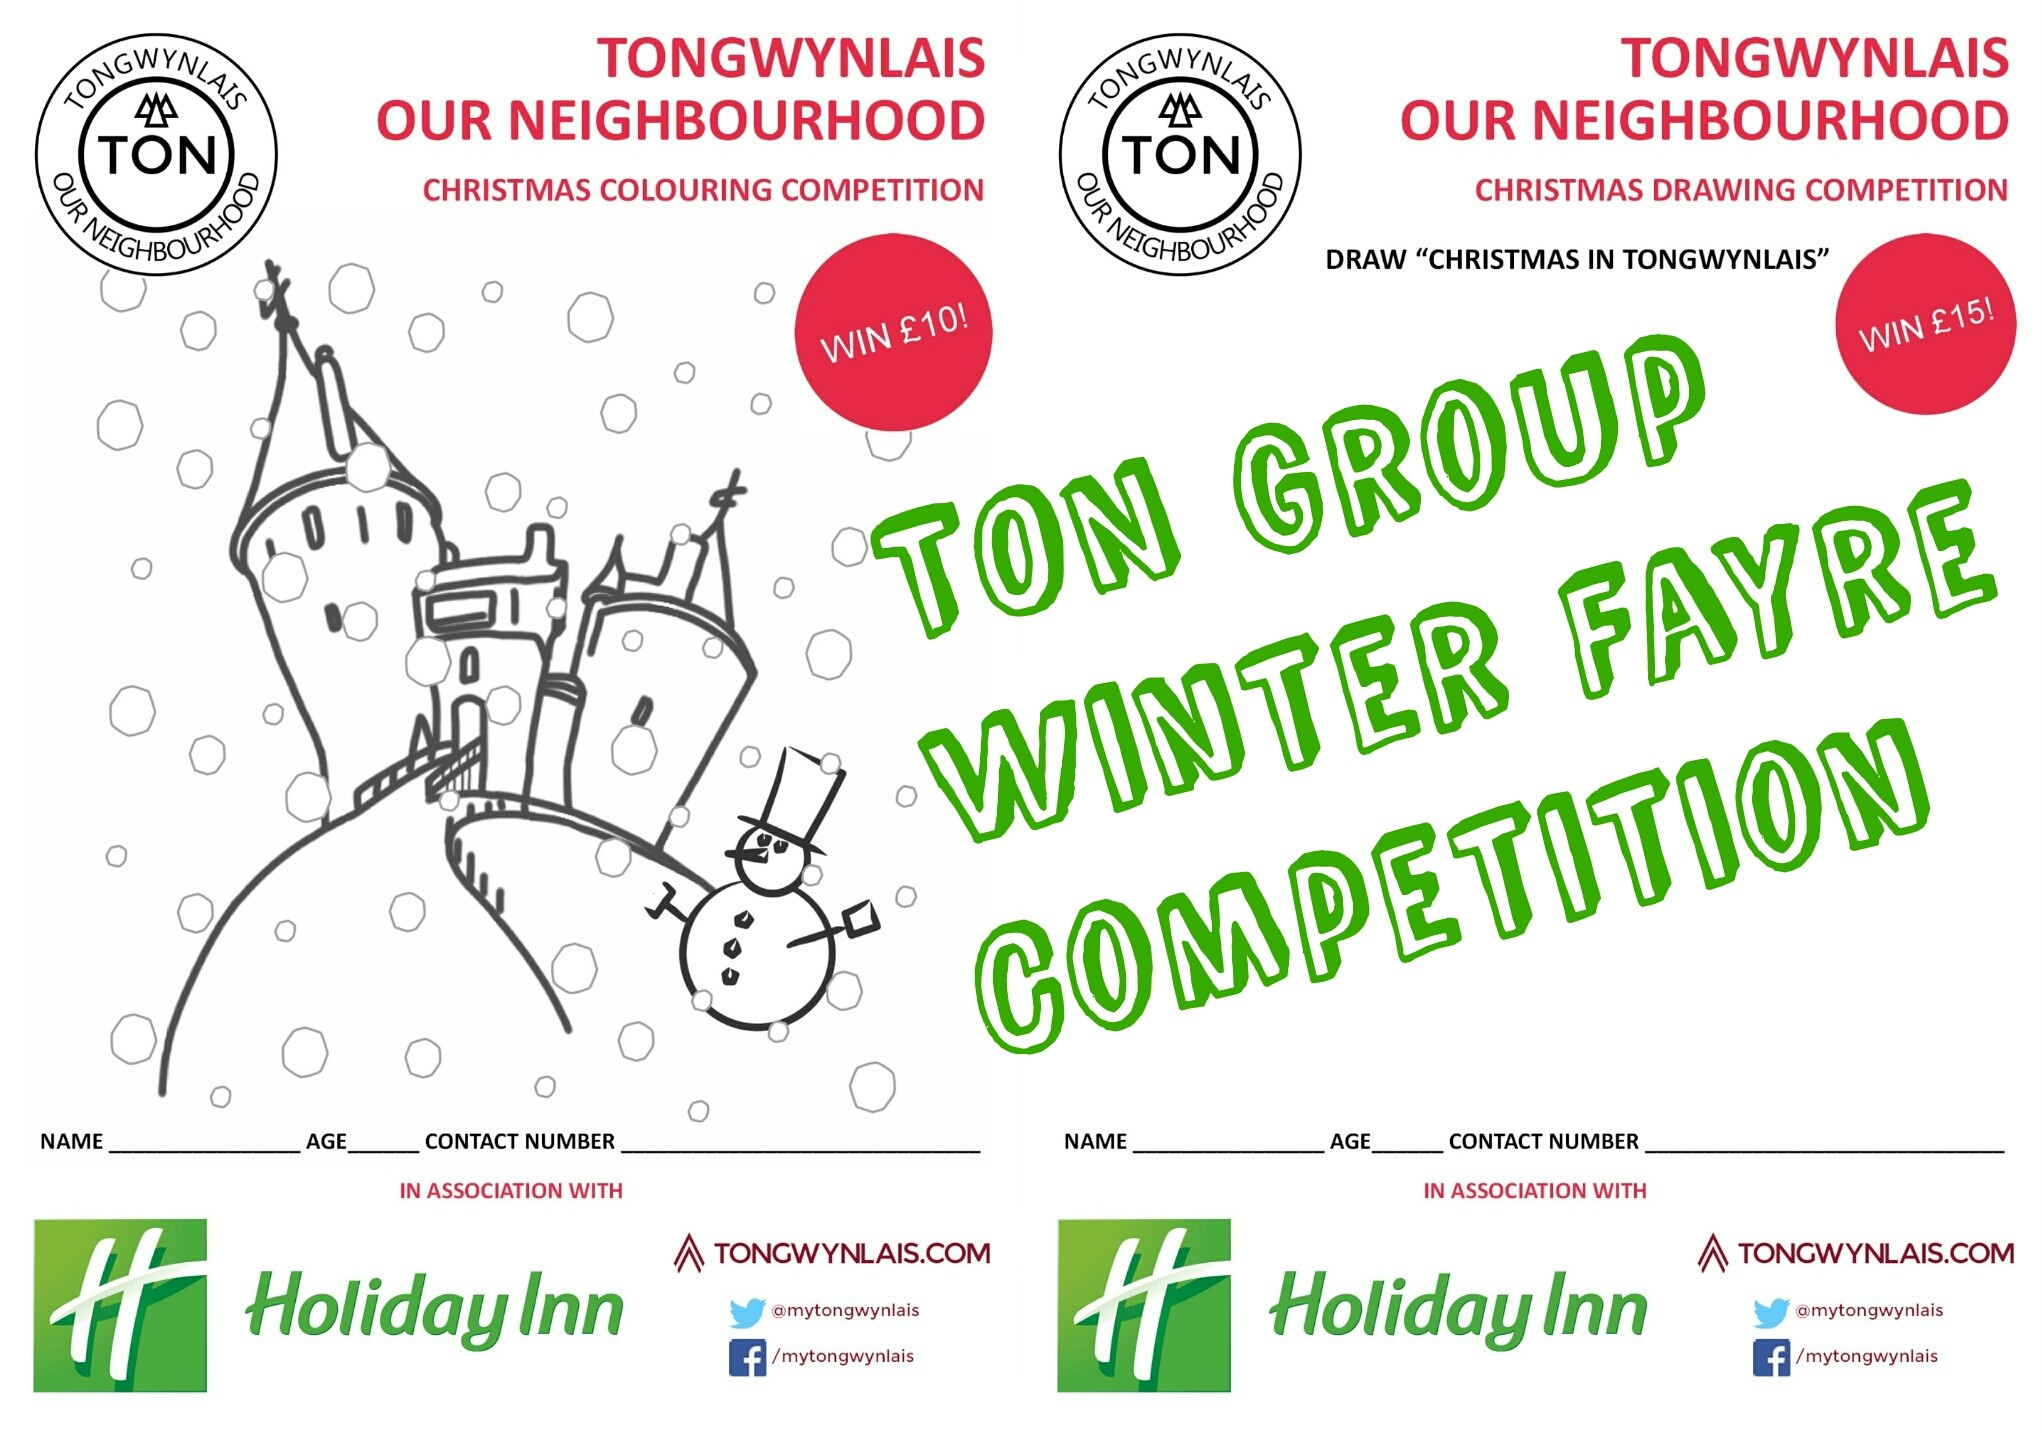 Winter Fayre competition header